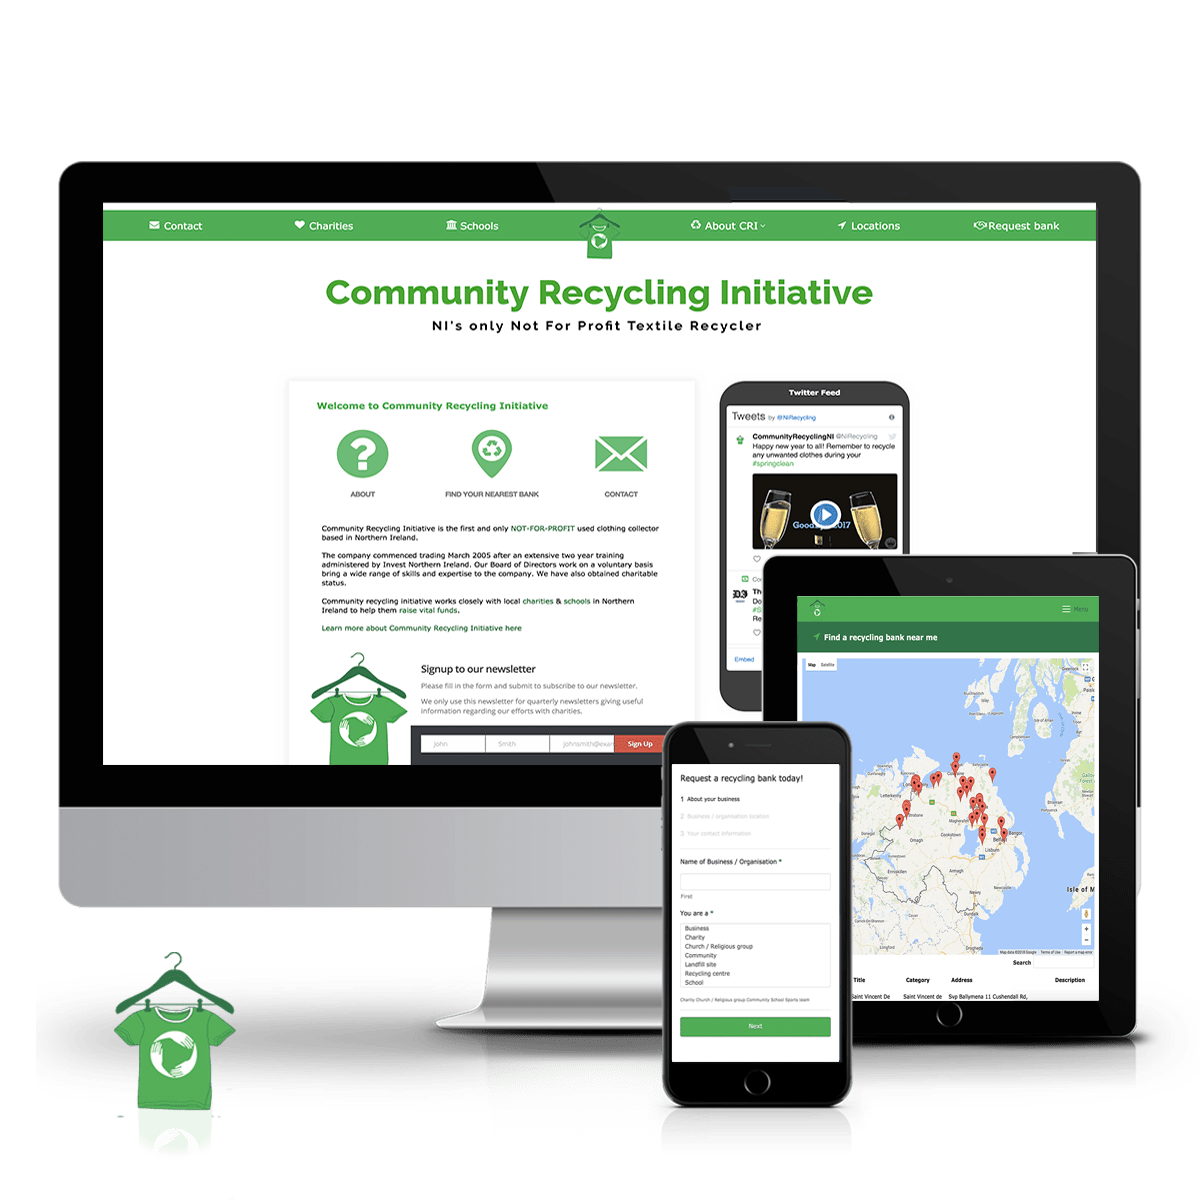 Community Recycling Initiative